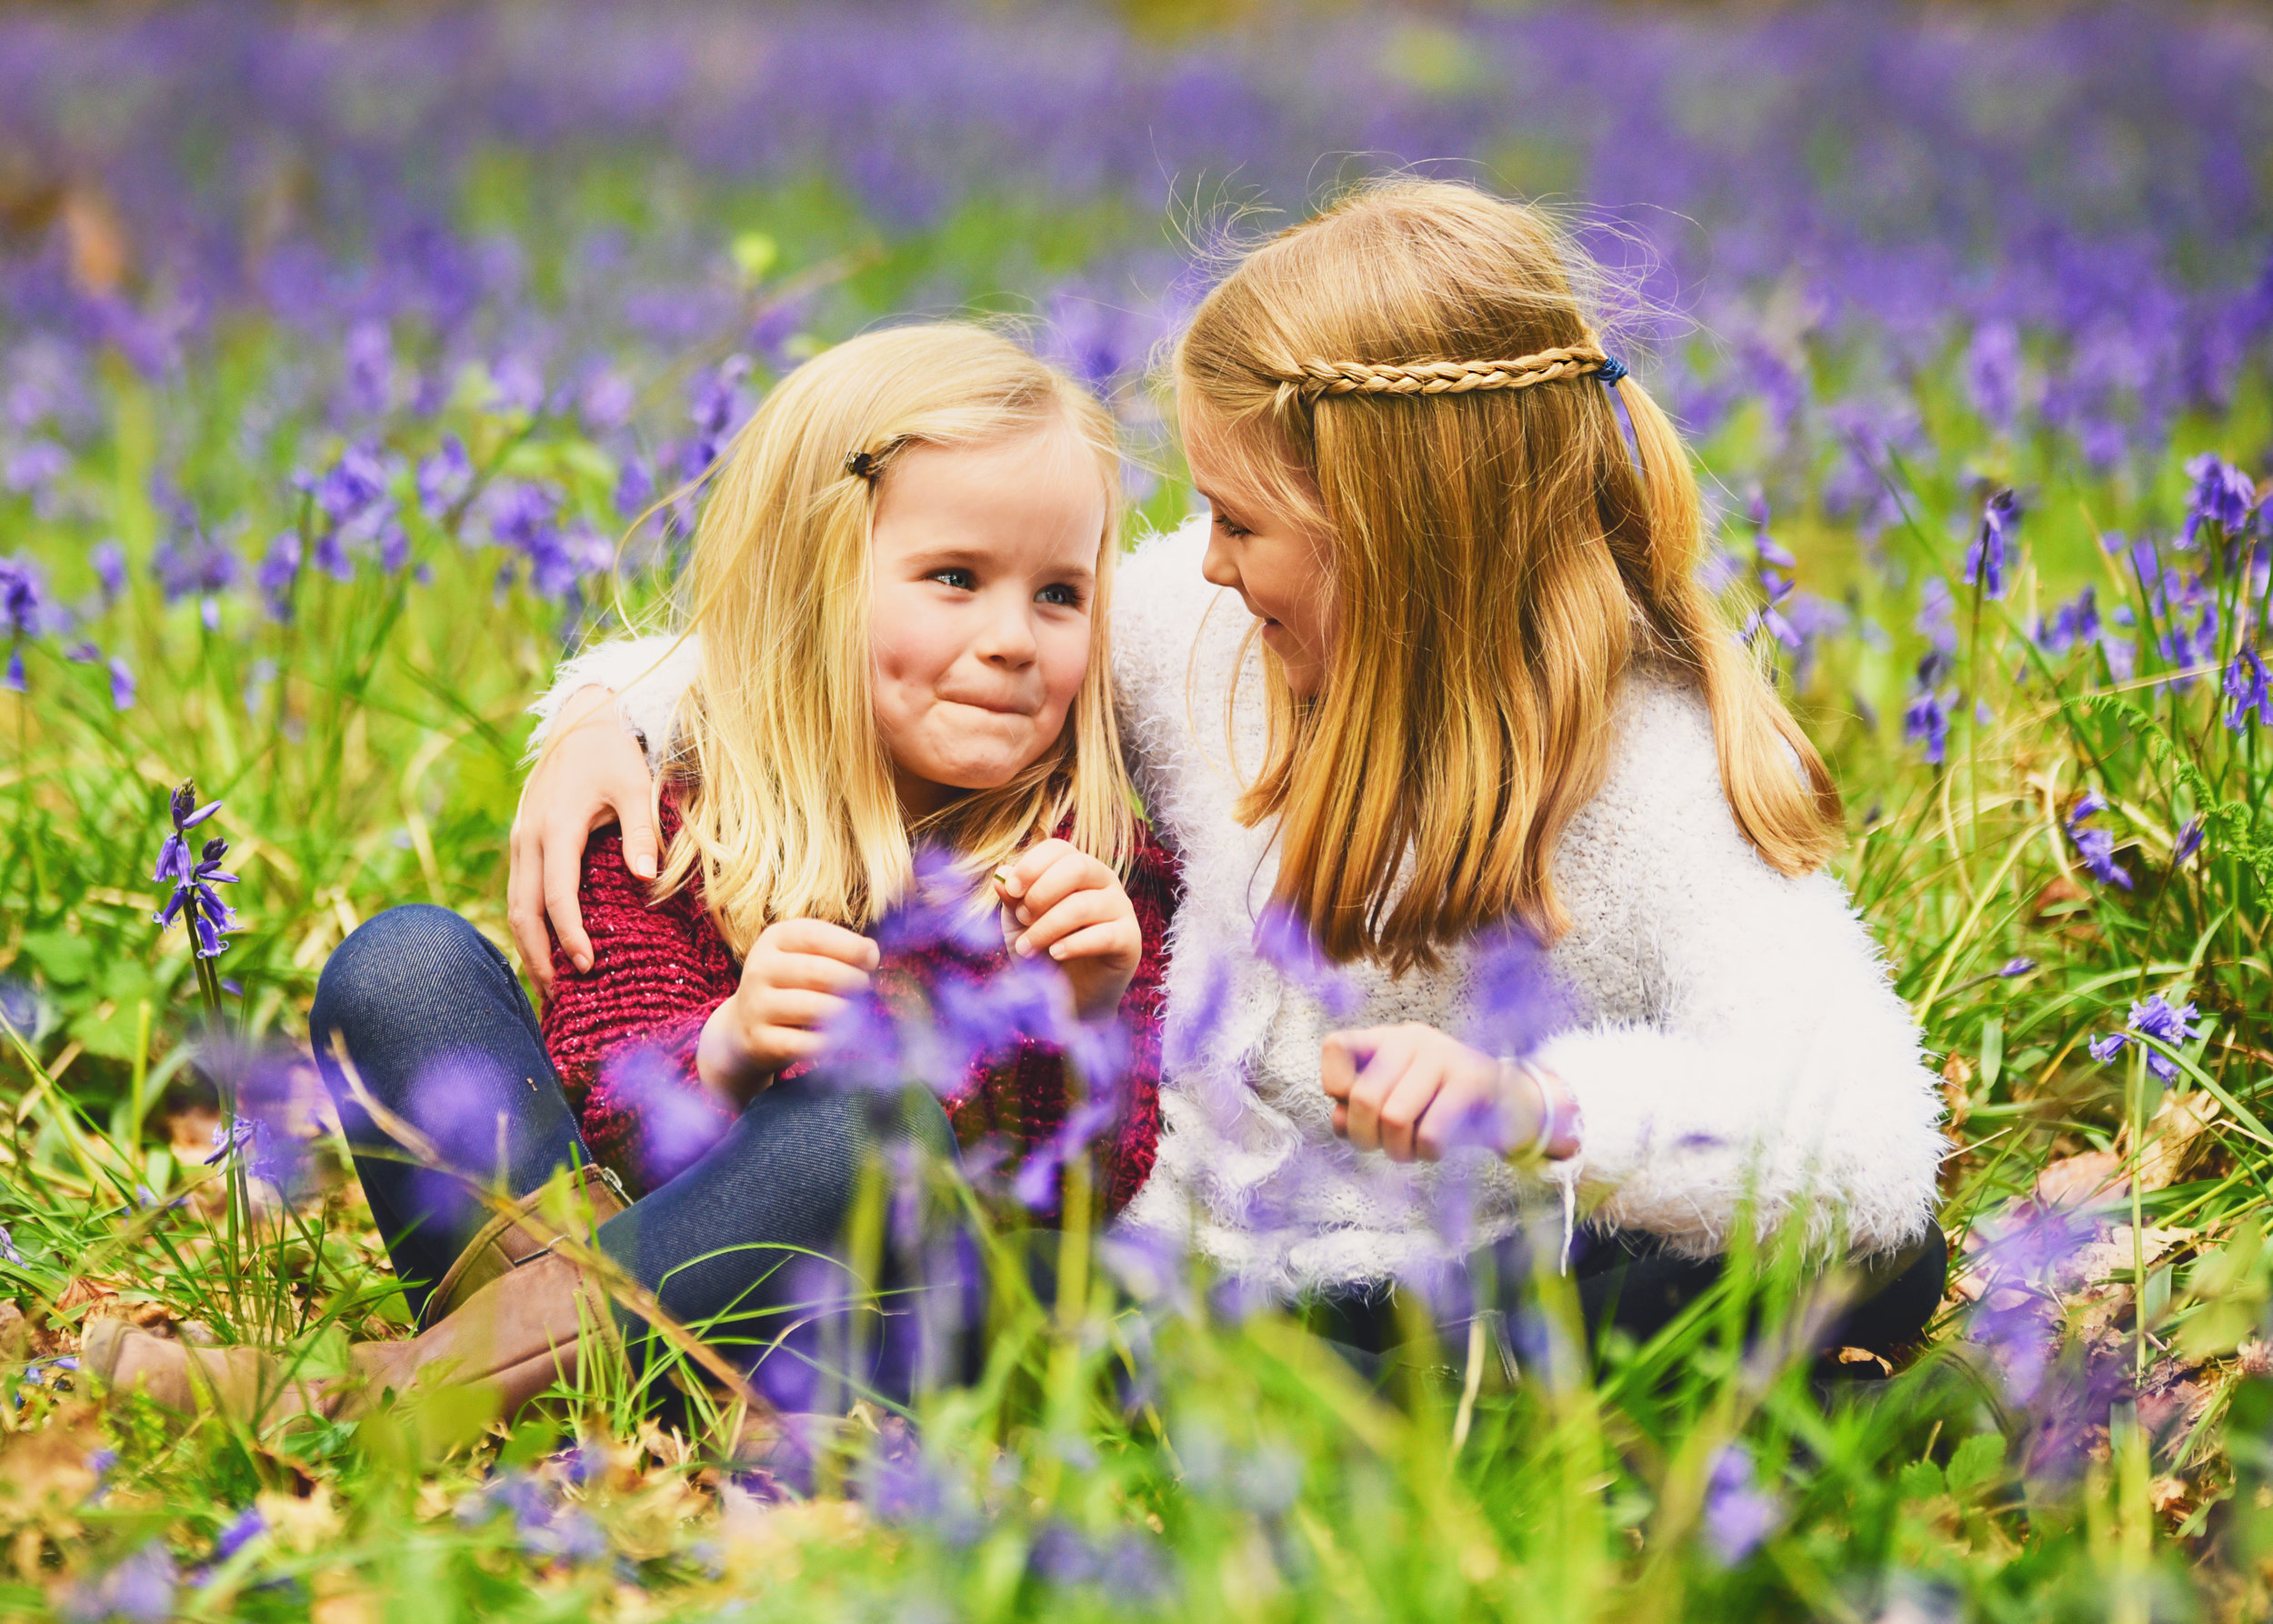 Spring Children's Family Portrait Photo Shoot Basingstoke Hampshire Berkshire